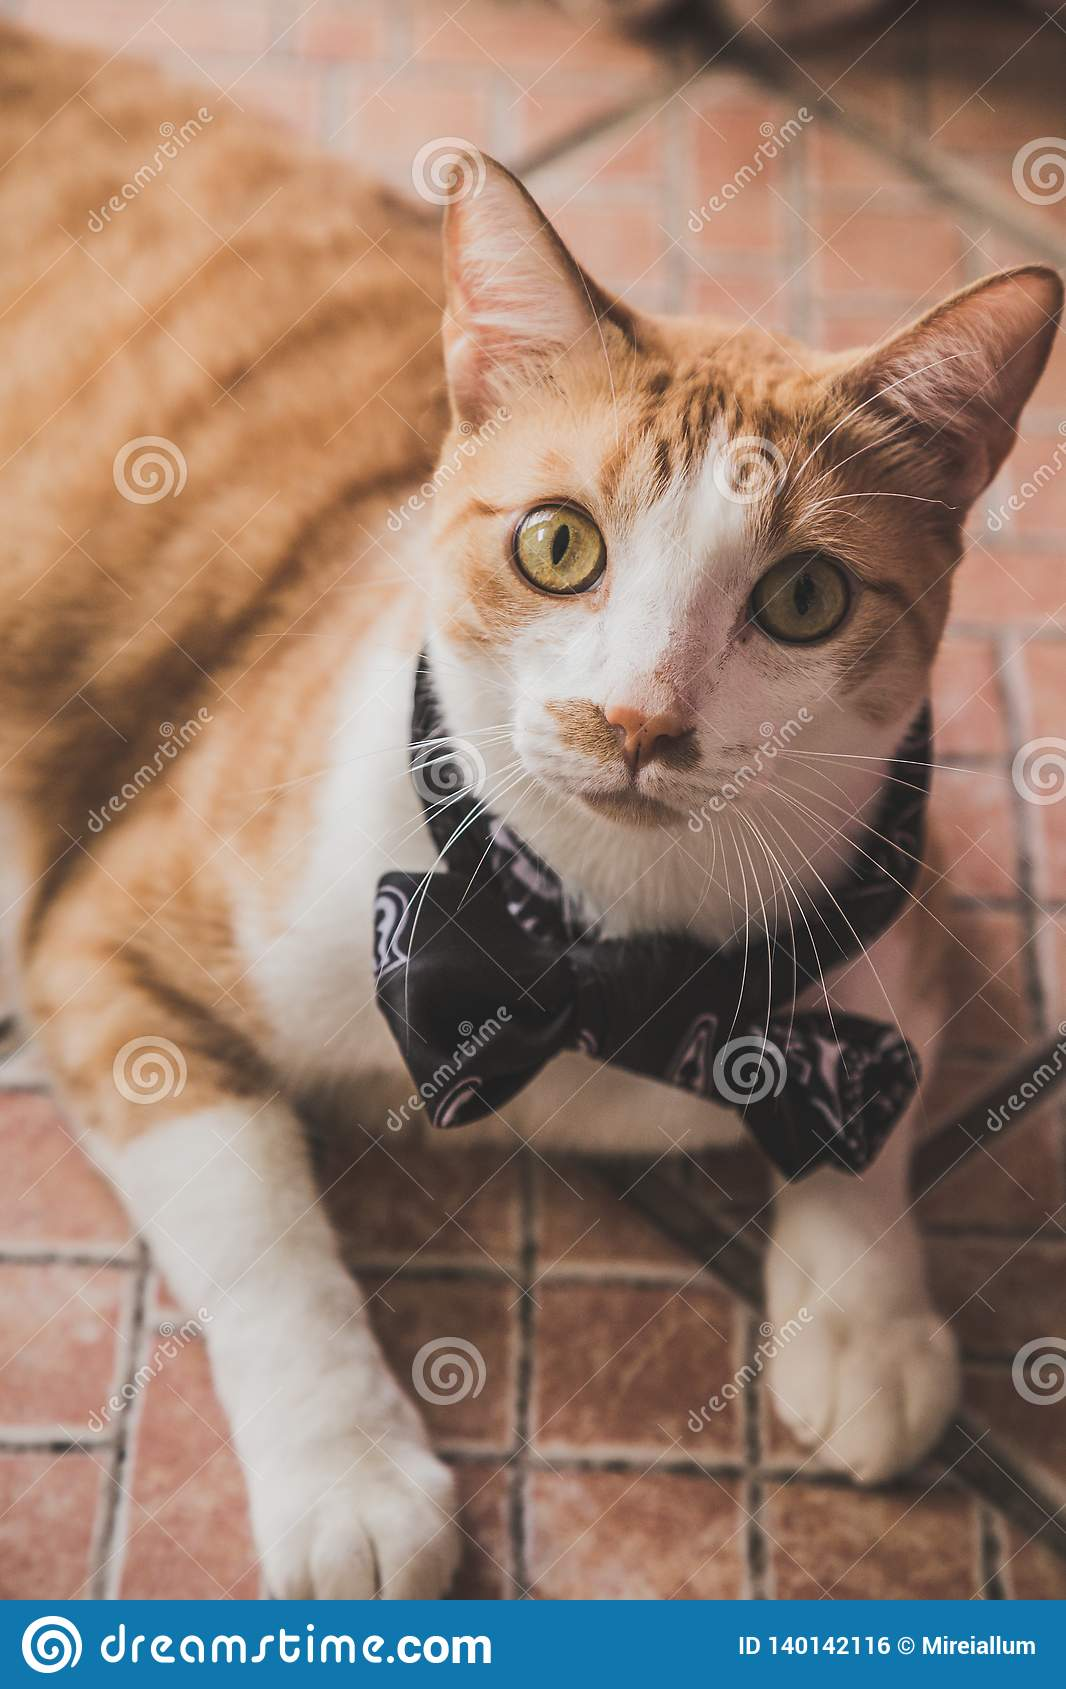 An orange and white cat with bow tie.